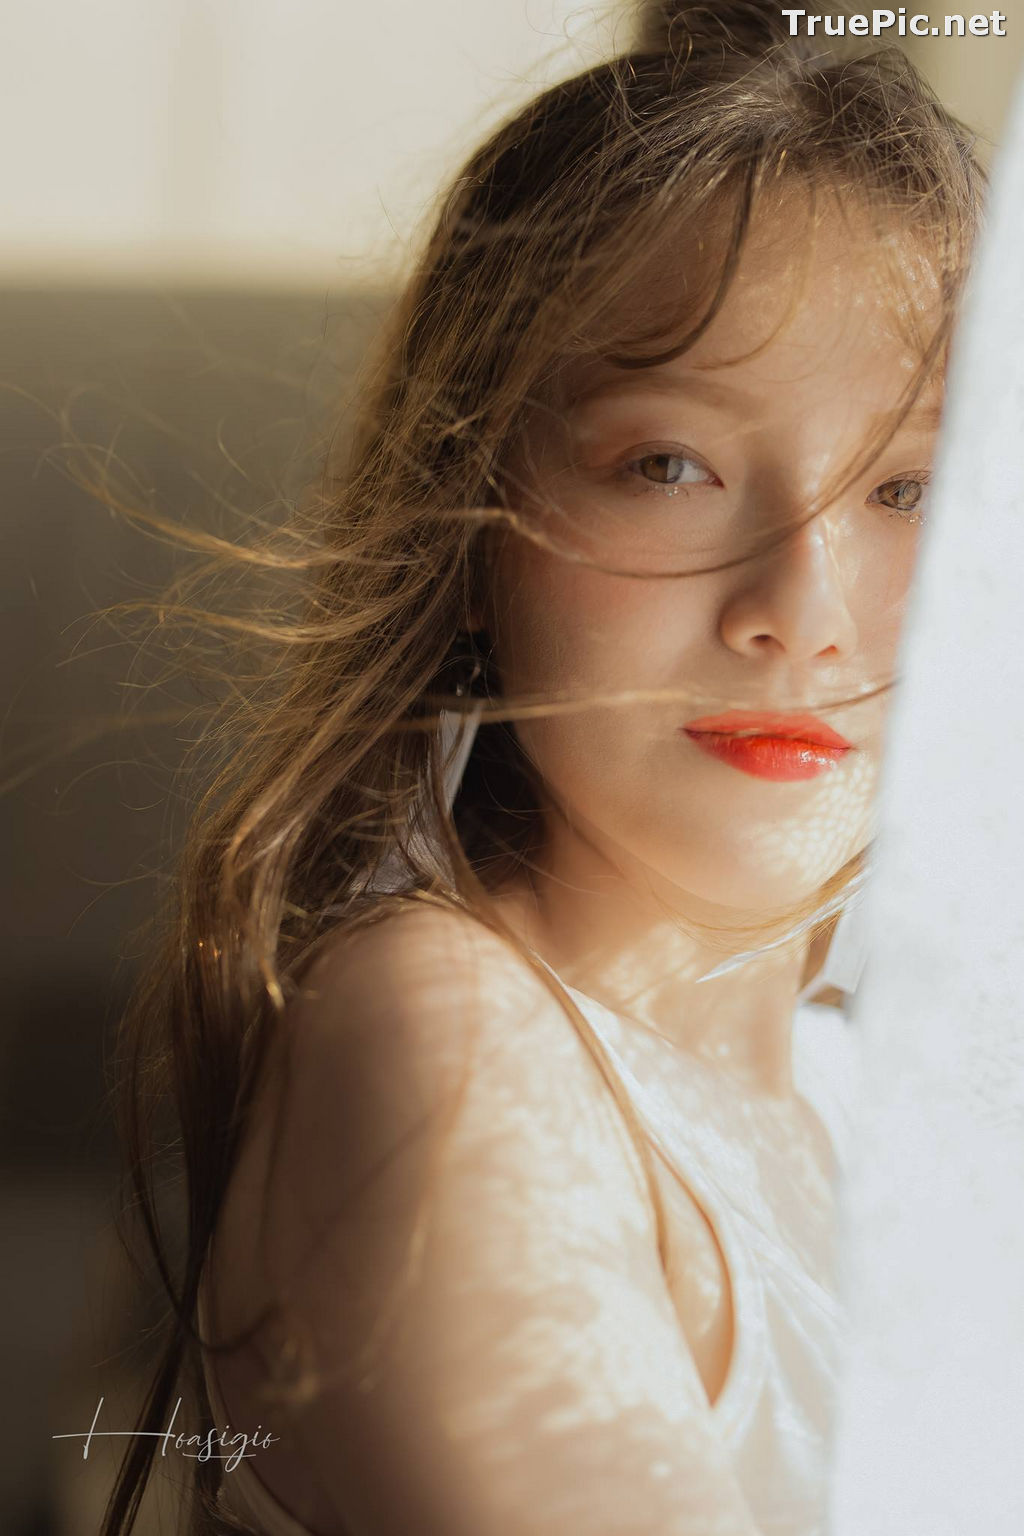 Image Vietnamese Model - Tuyet Son - White Skin and Red Lips - TruePic.net - Picture-9